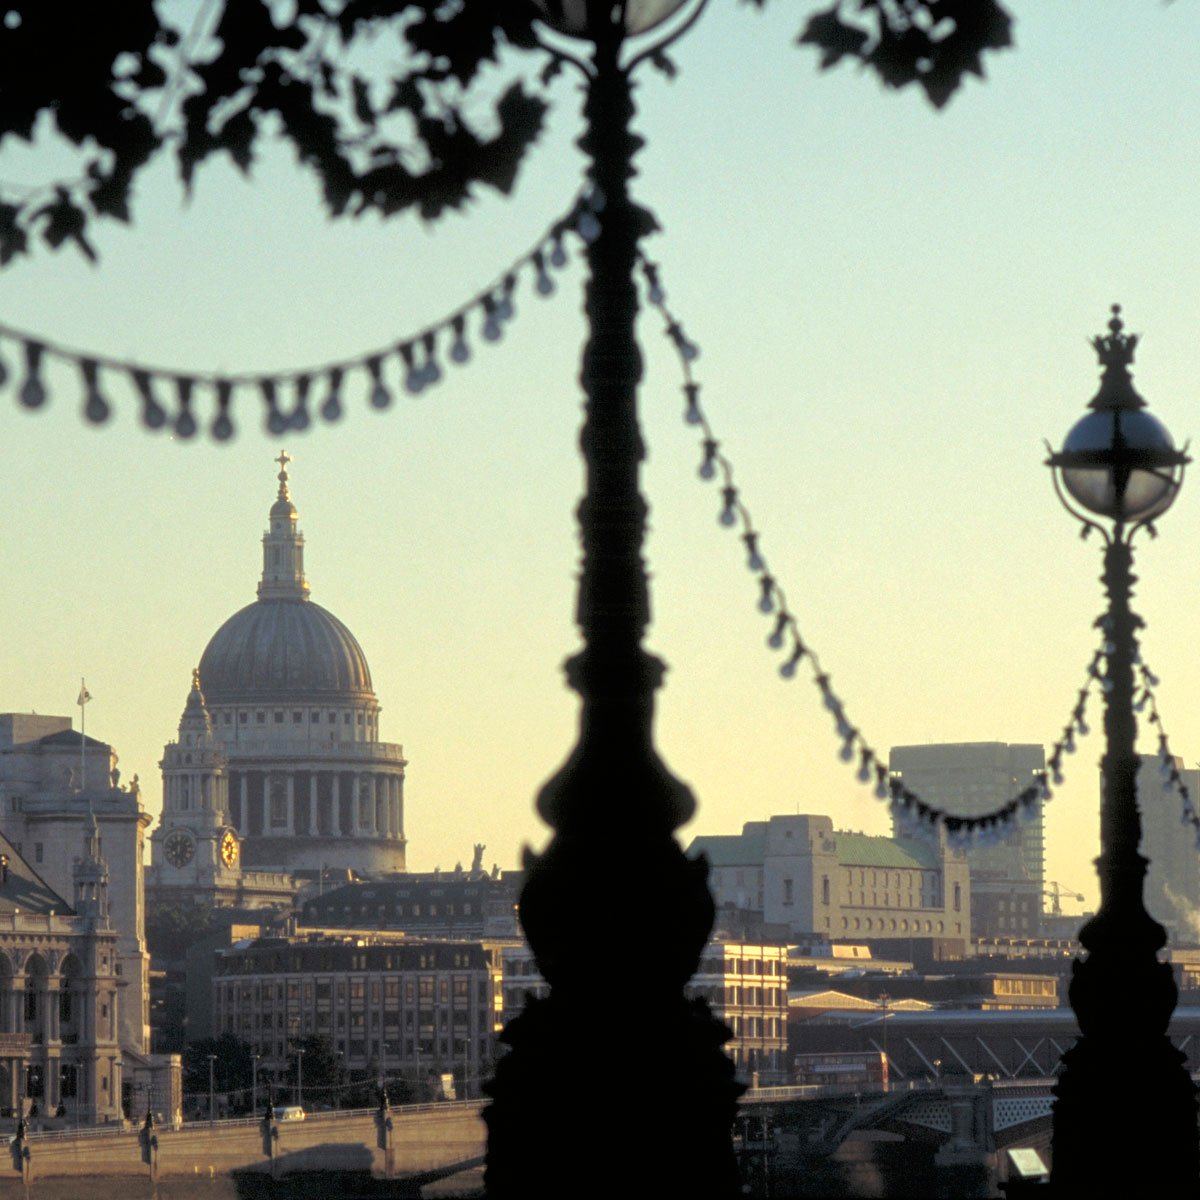 London Destination Guide St Pauls Cathedral